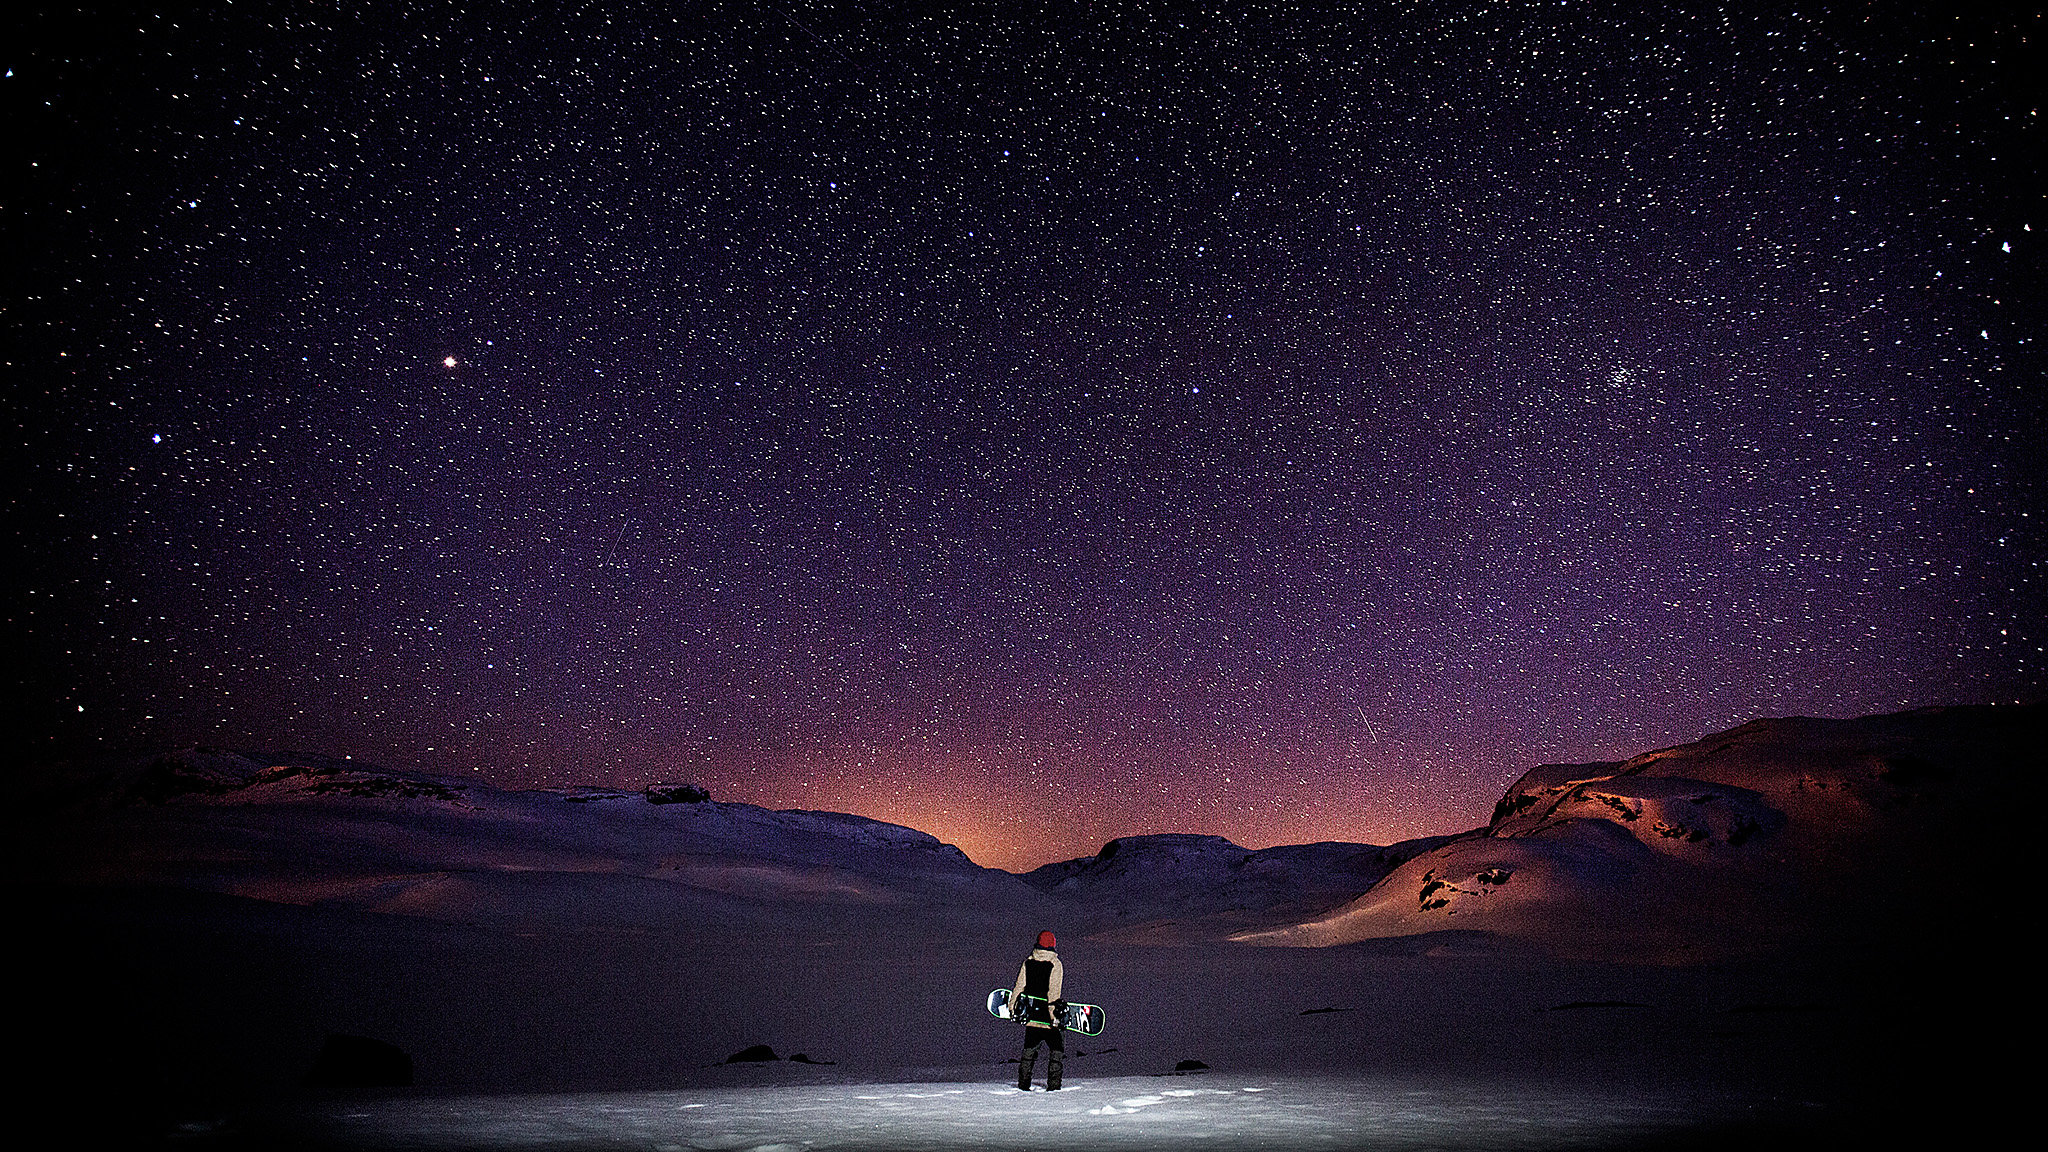 Winter may be over, but that doesn't mean it has to be forgotten. We reached out to some of our favorite ski and snowboard photographers to collect this gallery of their favorite images from this past season. Like this photo of Fredrik Evensen, which was shot recently while out camping in the wild in Norway, says photographer Frode Sandbech, after a long and good day of shooting snowboarding.